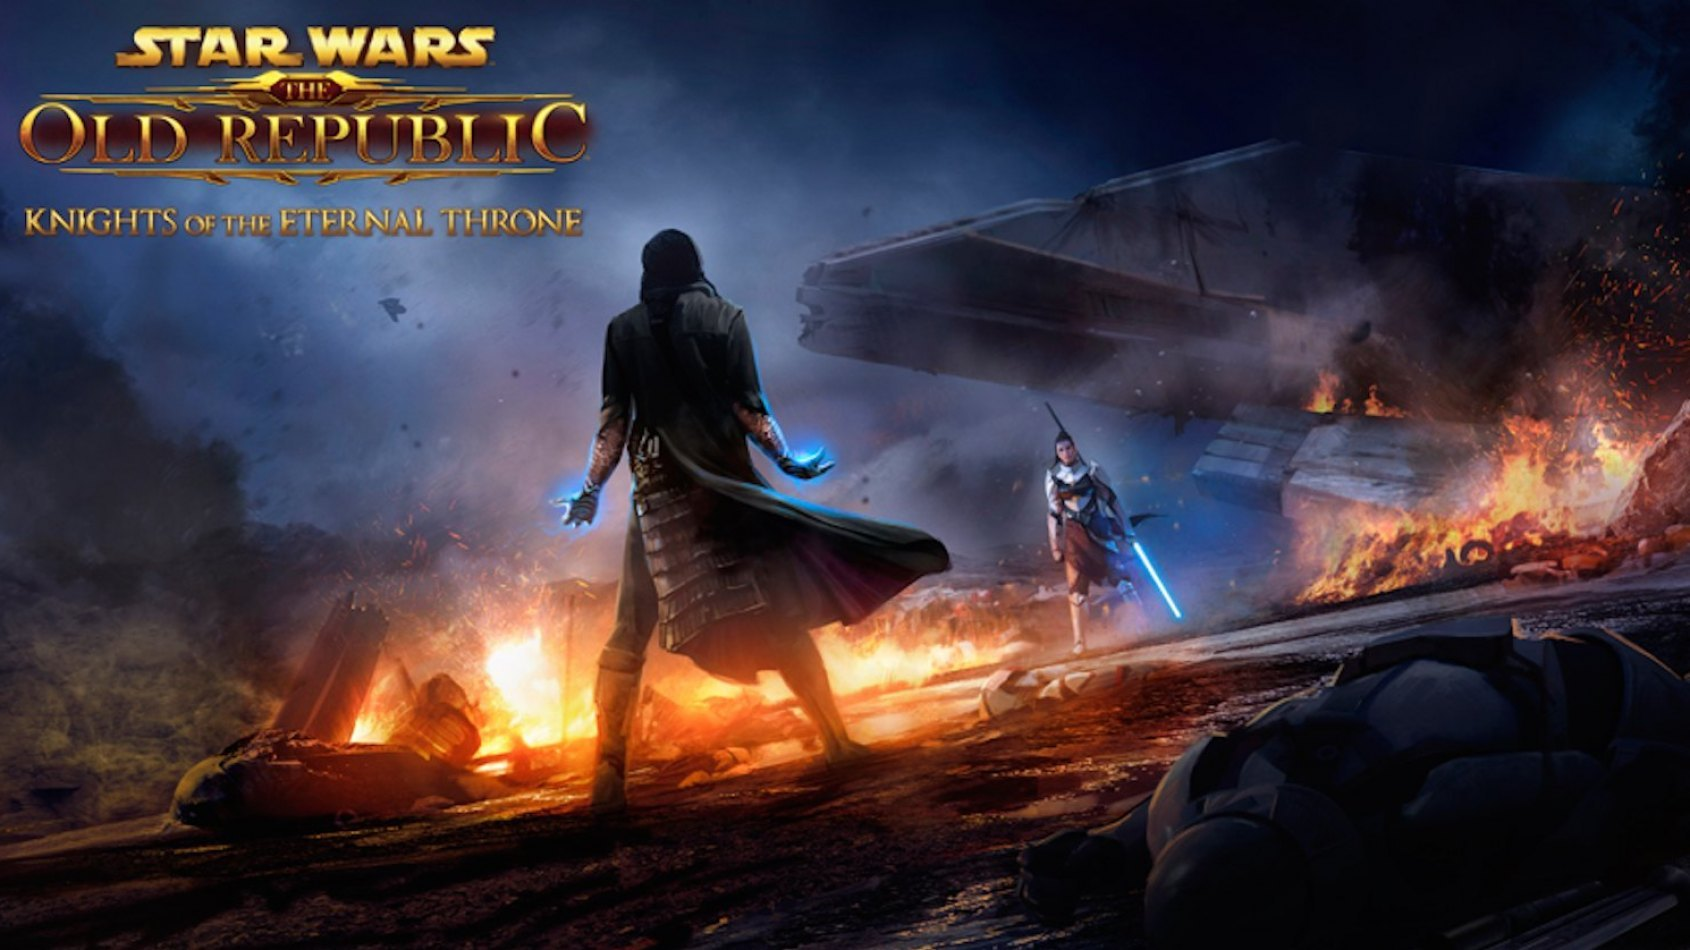 L'extension Star Wars: The Old Republic: Knights of the Eternal Throne